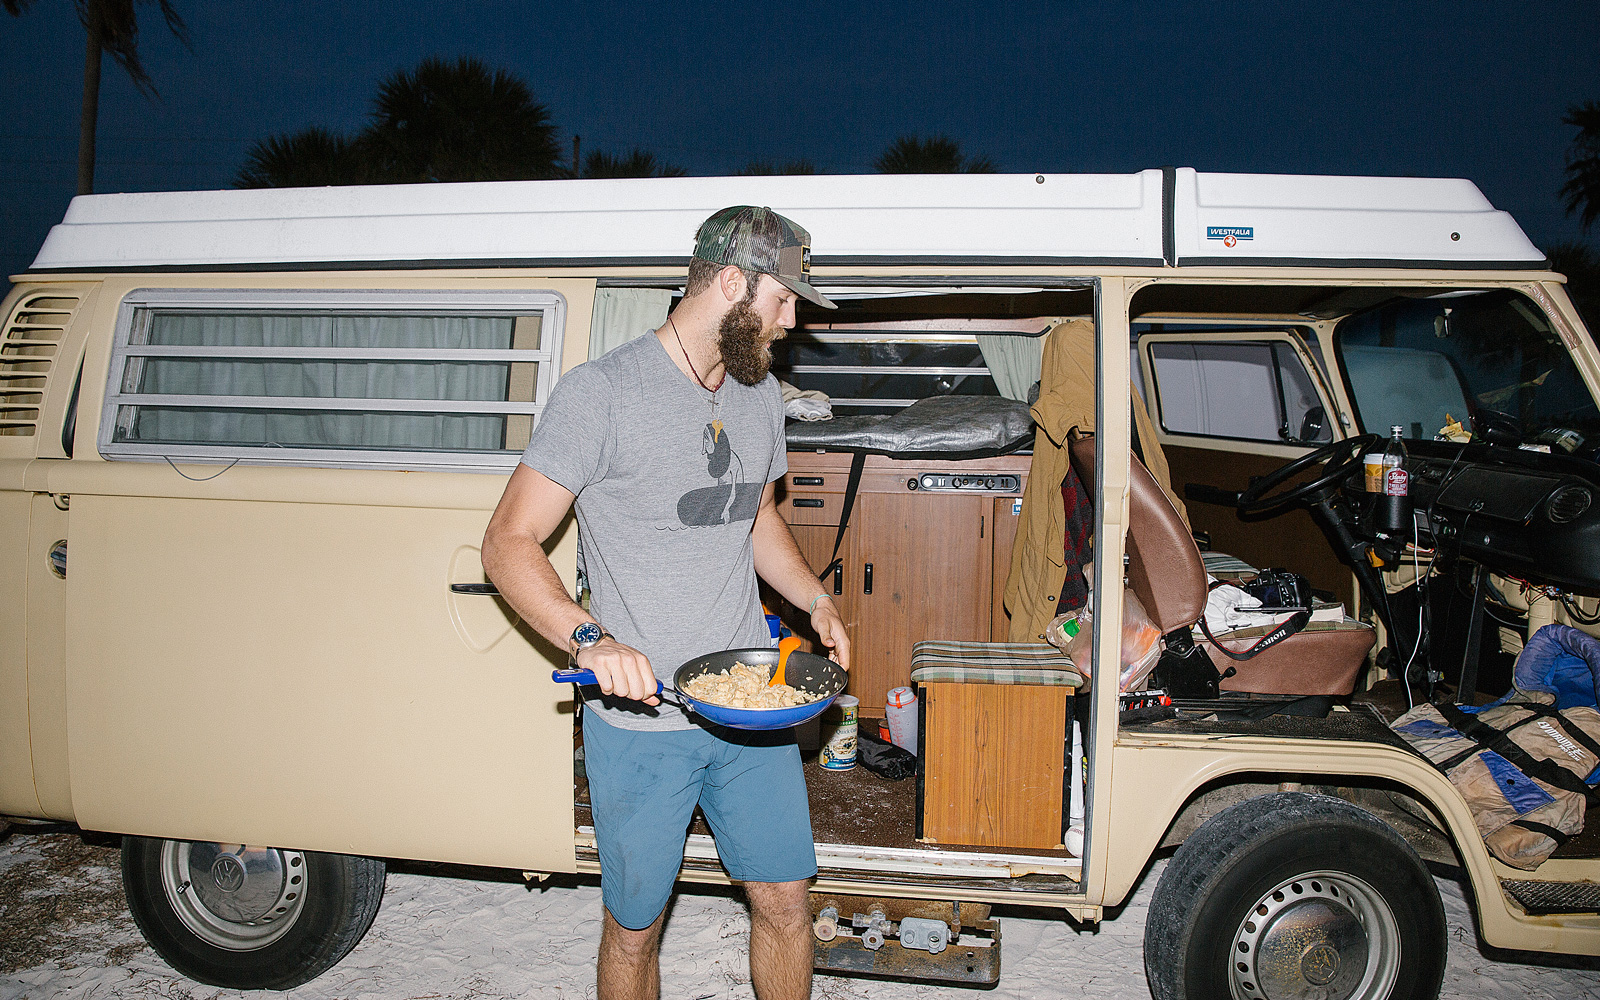 mag_danielnorris01_nw_1600x1000-jpg.25219_Millionaire Pitcher Lives in His Volkswagen Microbus_Van Dwelling / Rubber Tramping_Squat the Planet_6:27 PM